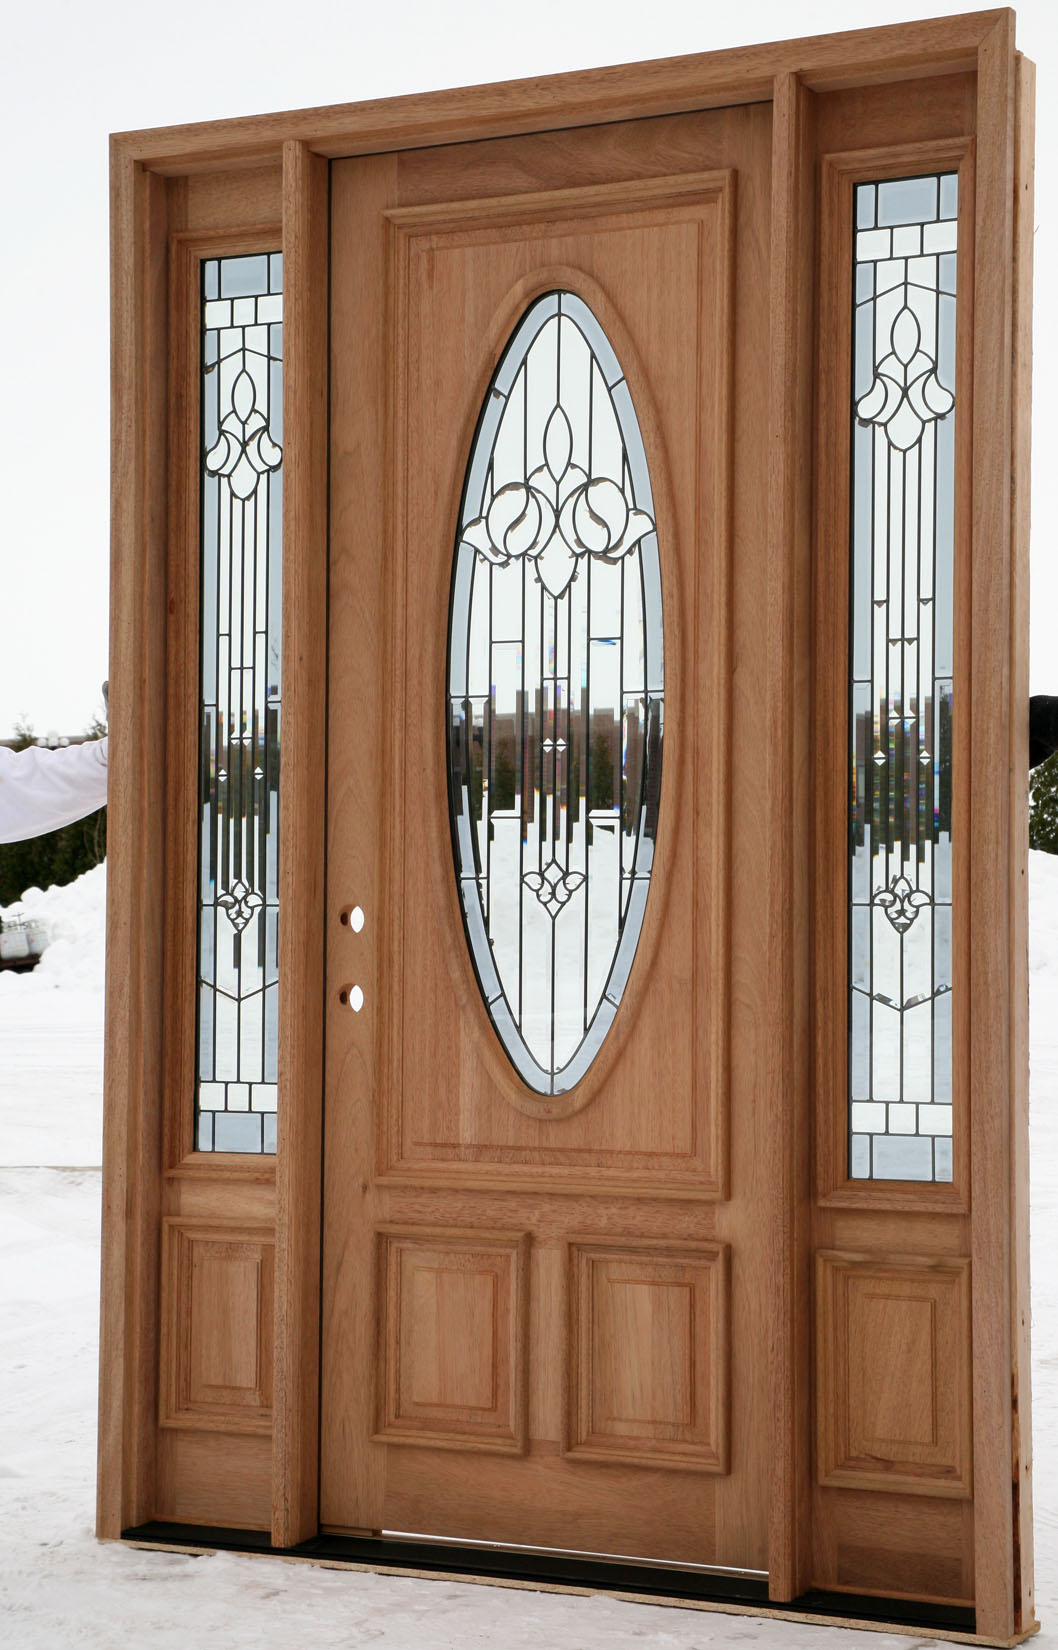 1650 #73472A Exterior Entry Doors With Sidelights pic Metal Entry Doors With Sidelights 39211058